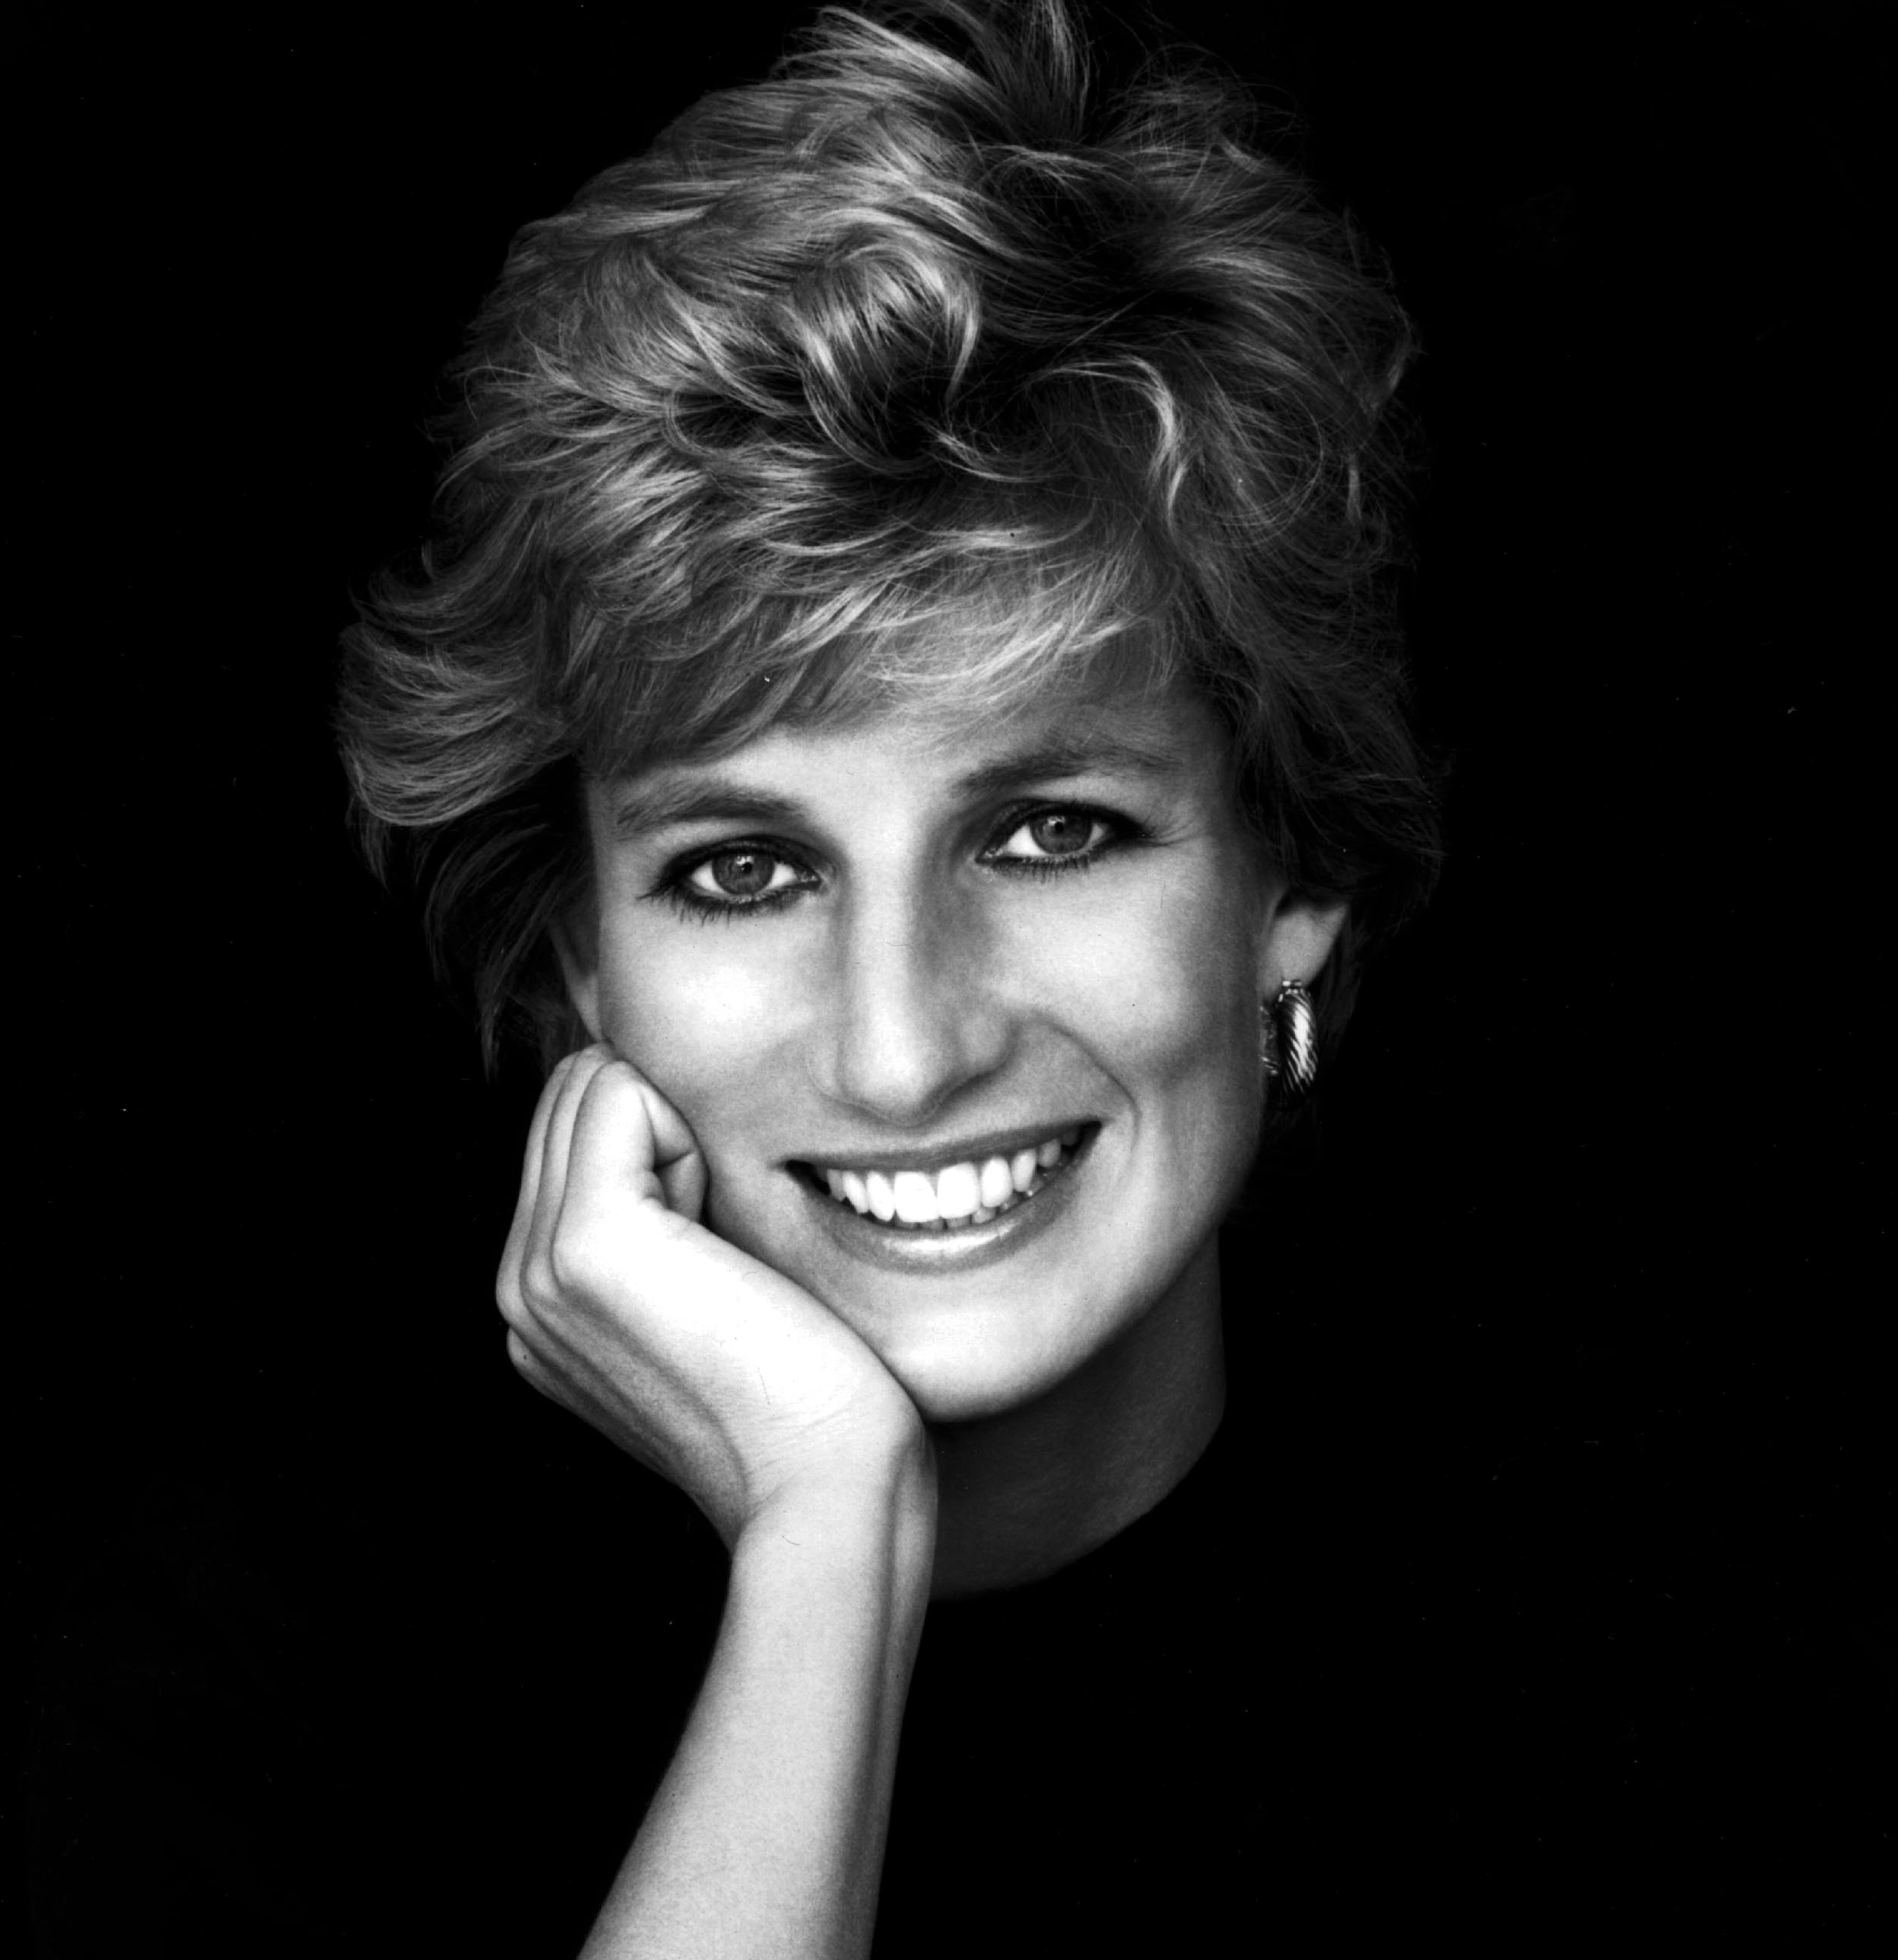 Princess Diana: https://rebeccahains.com/2015/03/05/balancing-princess-culture-with-significant-women-a-reader-report-on-raising-empowered-girls/